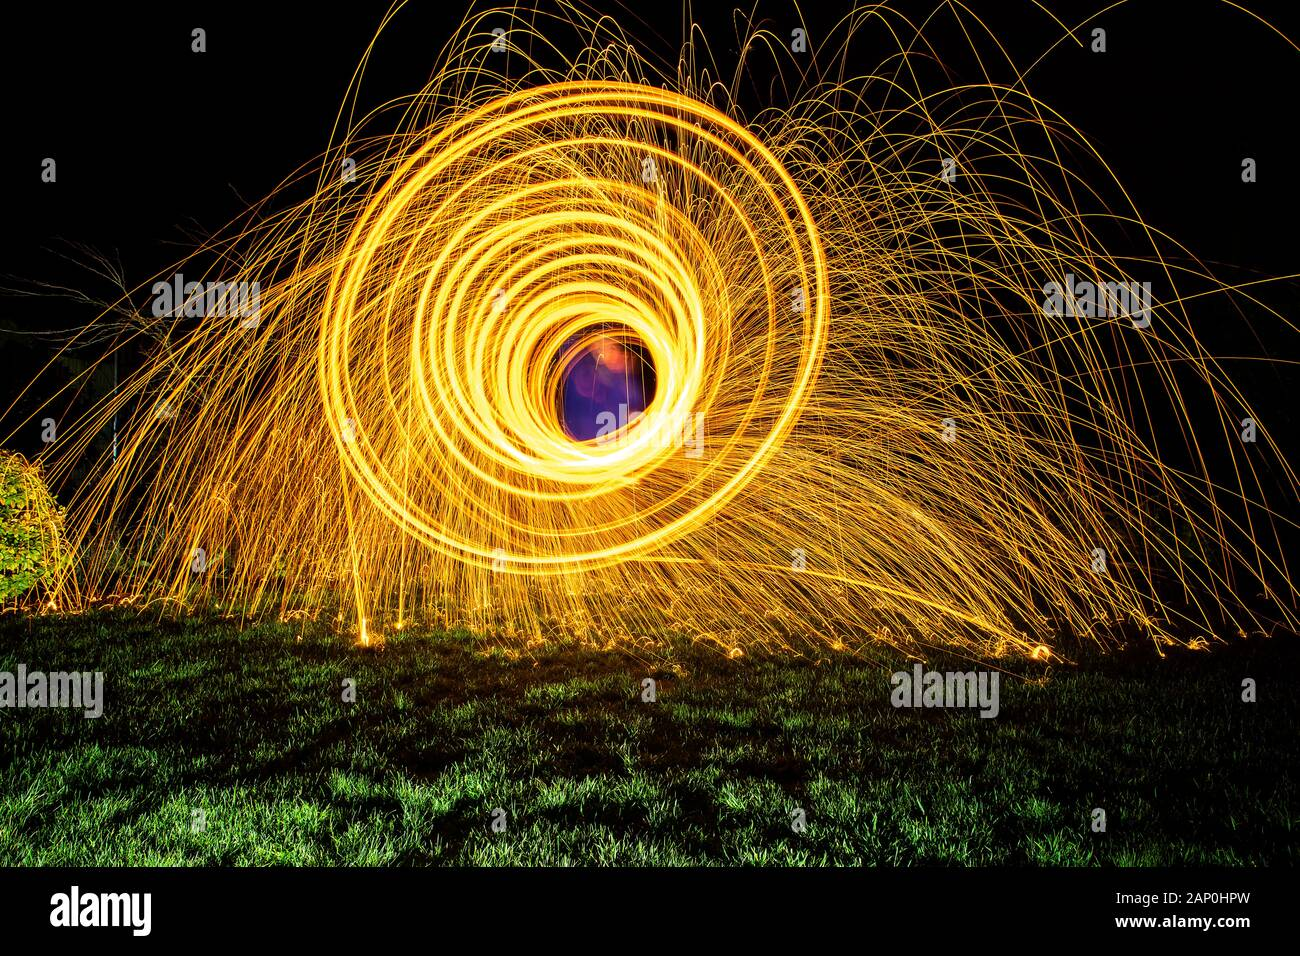 Firework, made by spinning burning wire wool in an egg whisk. Stock Photo